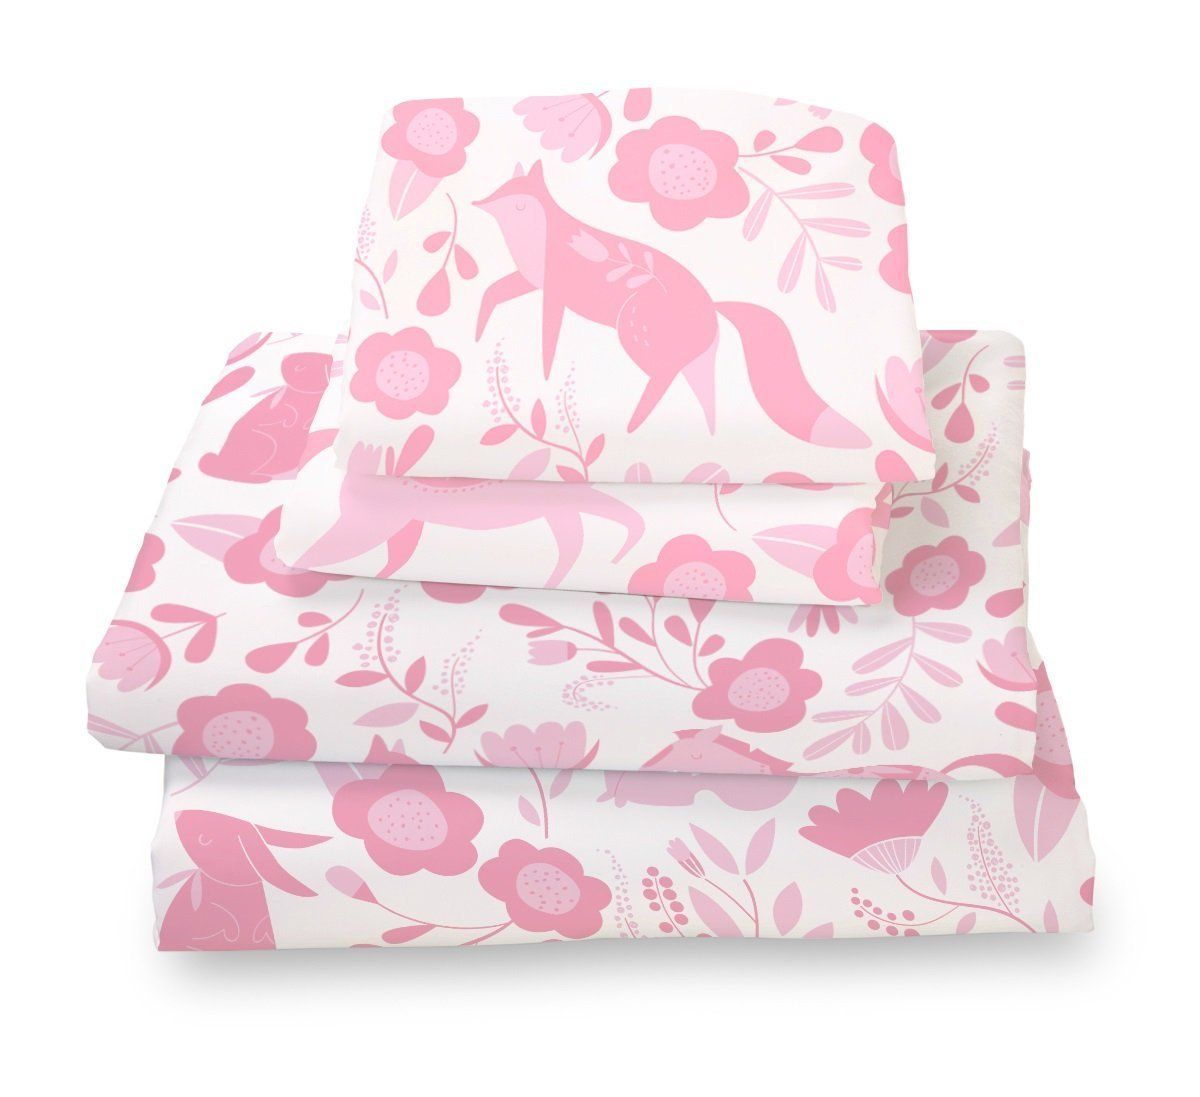 Queen Sheet Set Pink Folk Animals - Double Brushed Ultra Microfiber Luxury Bedding Set